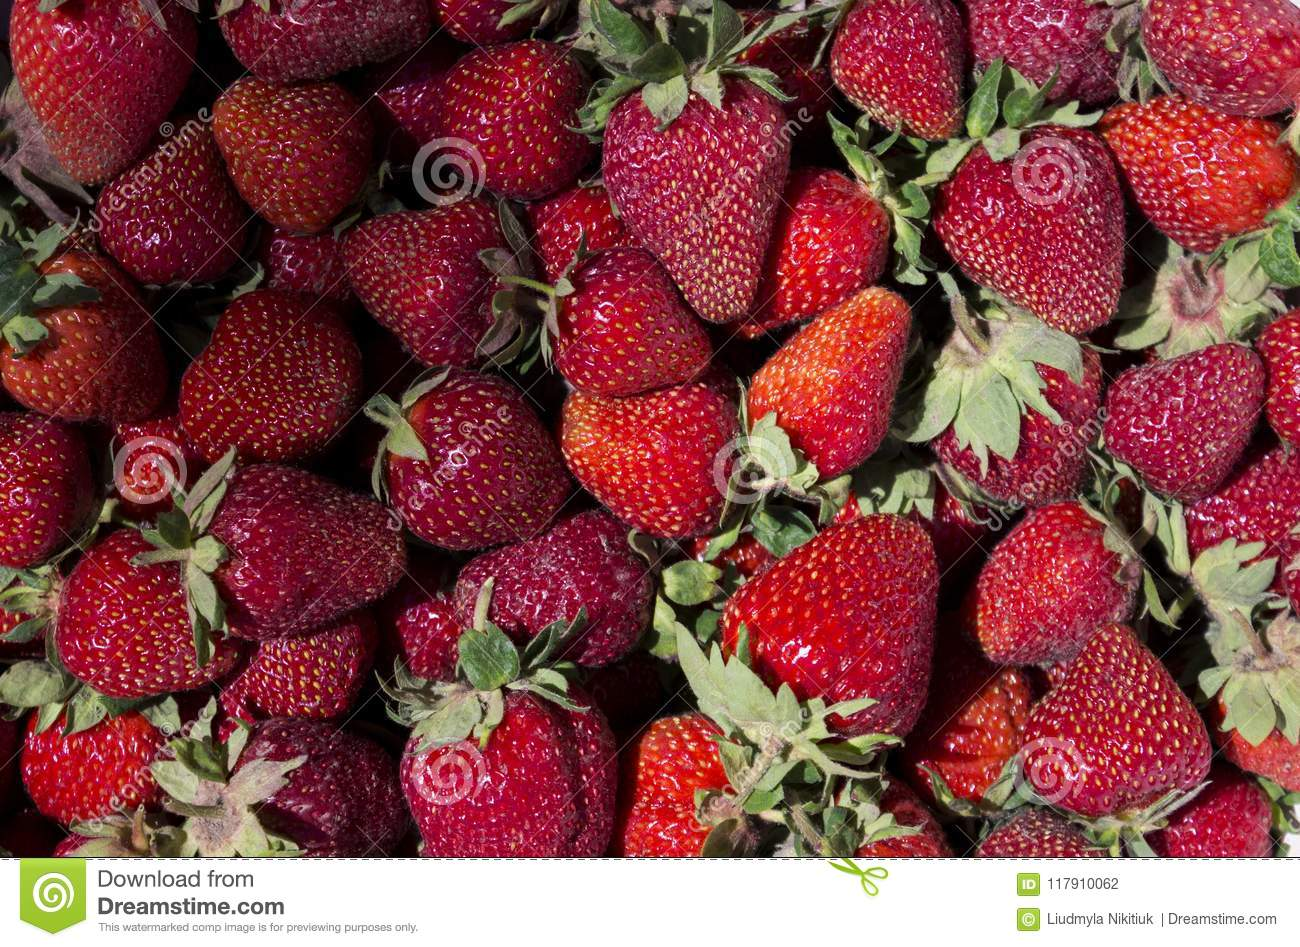 How are berries useful? 66